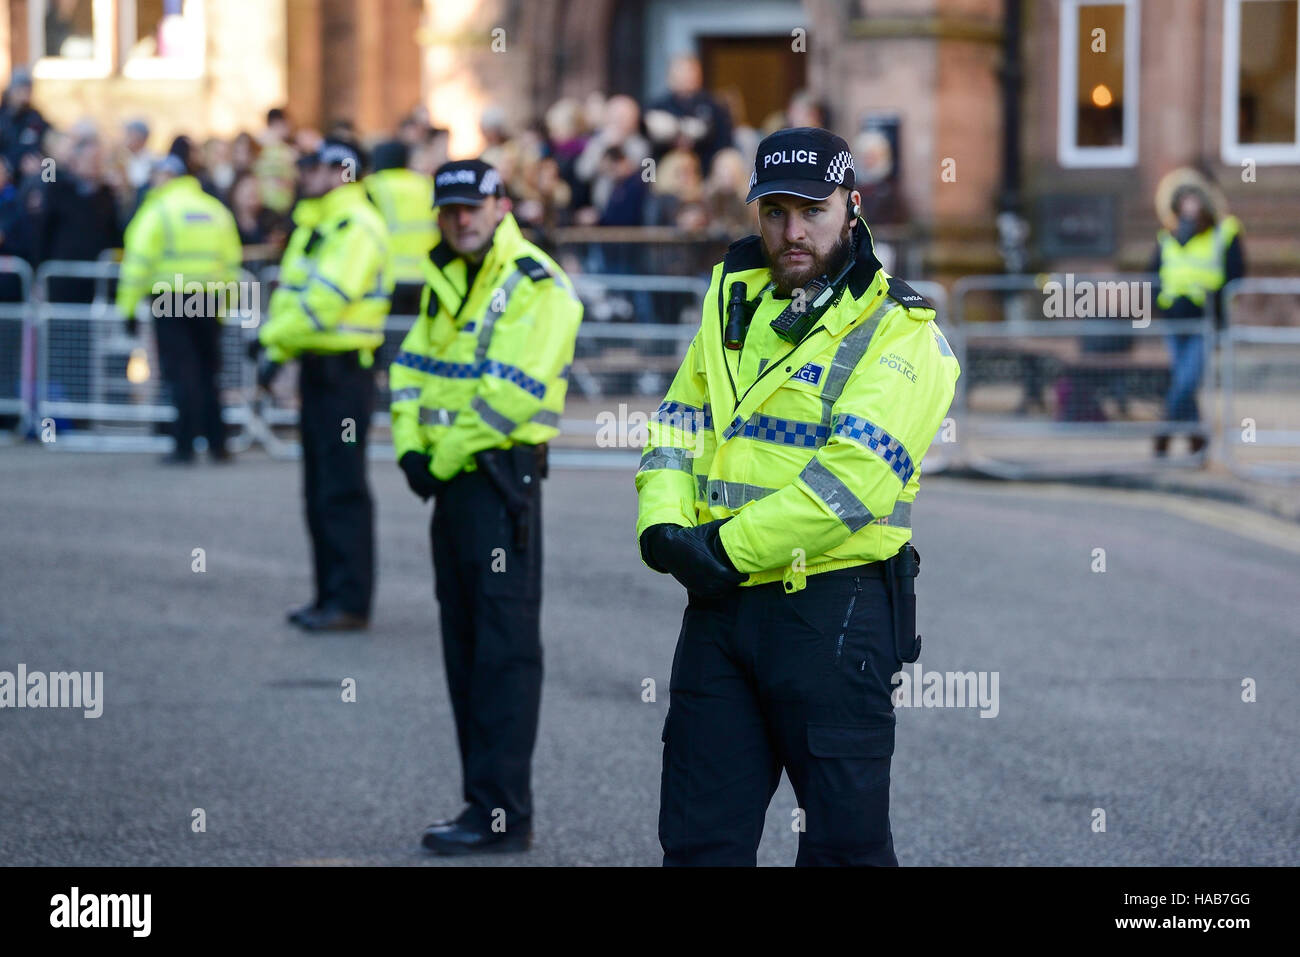 Chester, UK. 28th November 2016. A strong police presence outside Chester Cathedral as guests arrive for the memorial - Stock Image